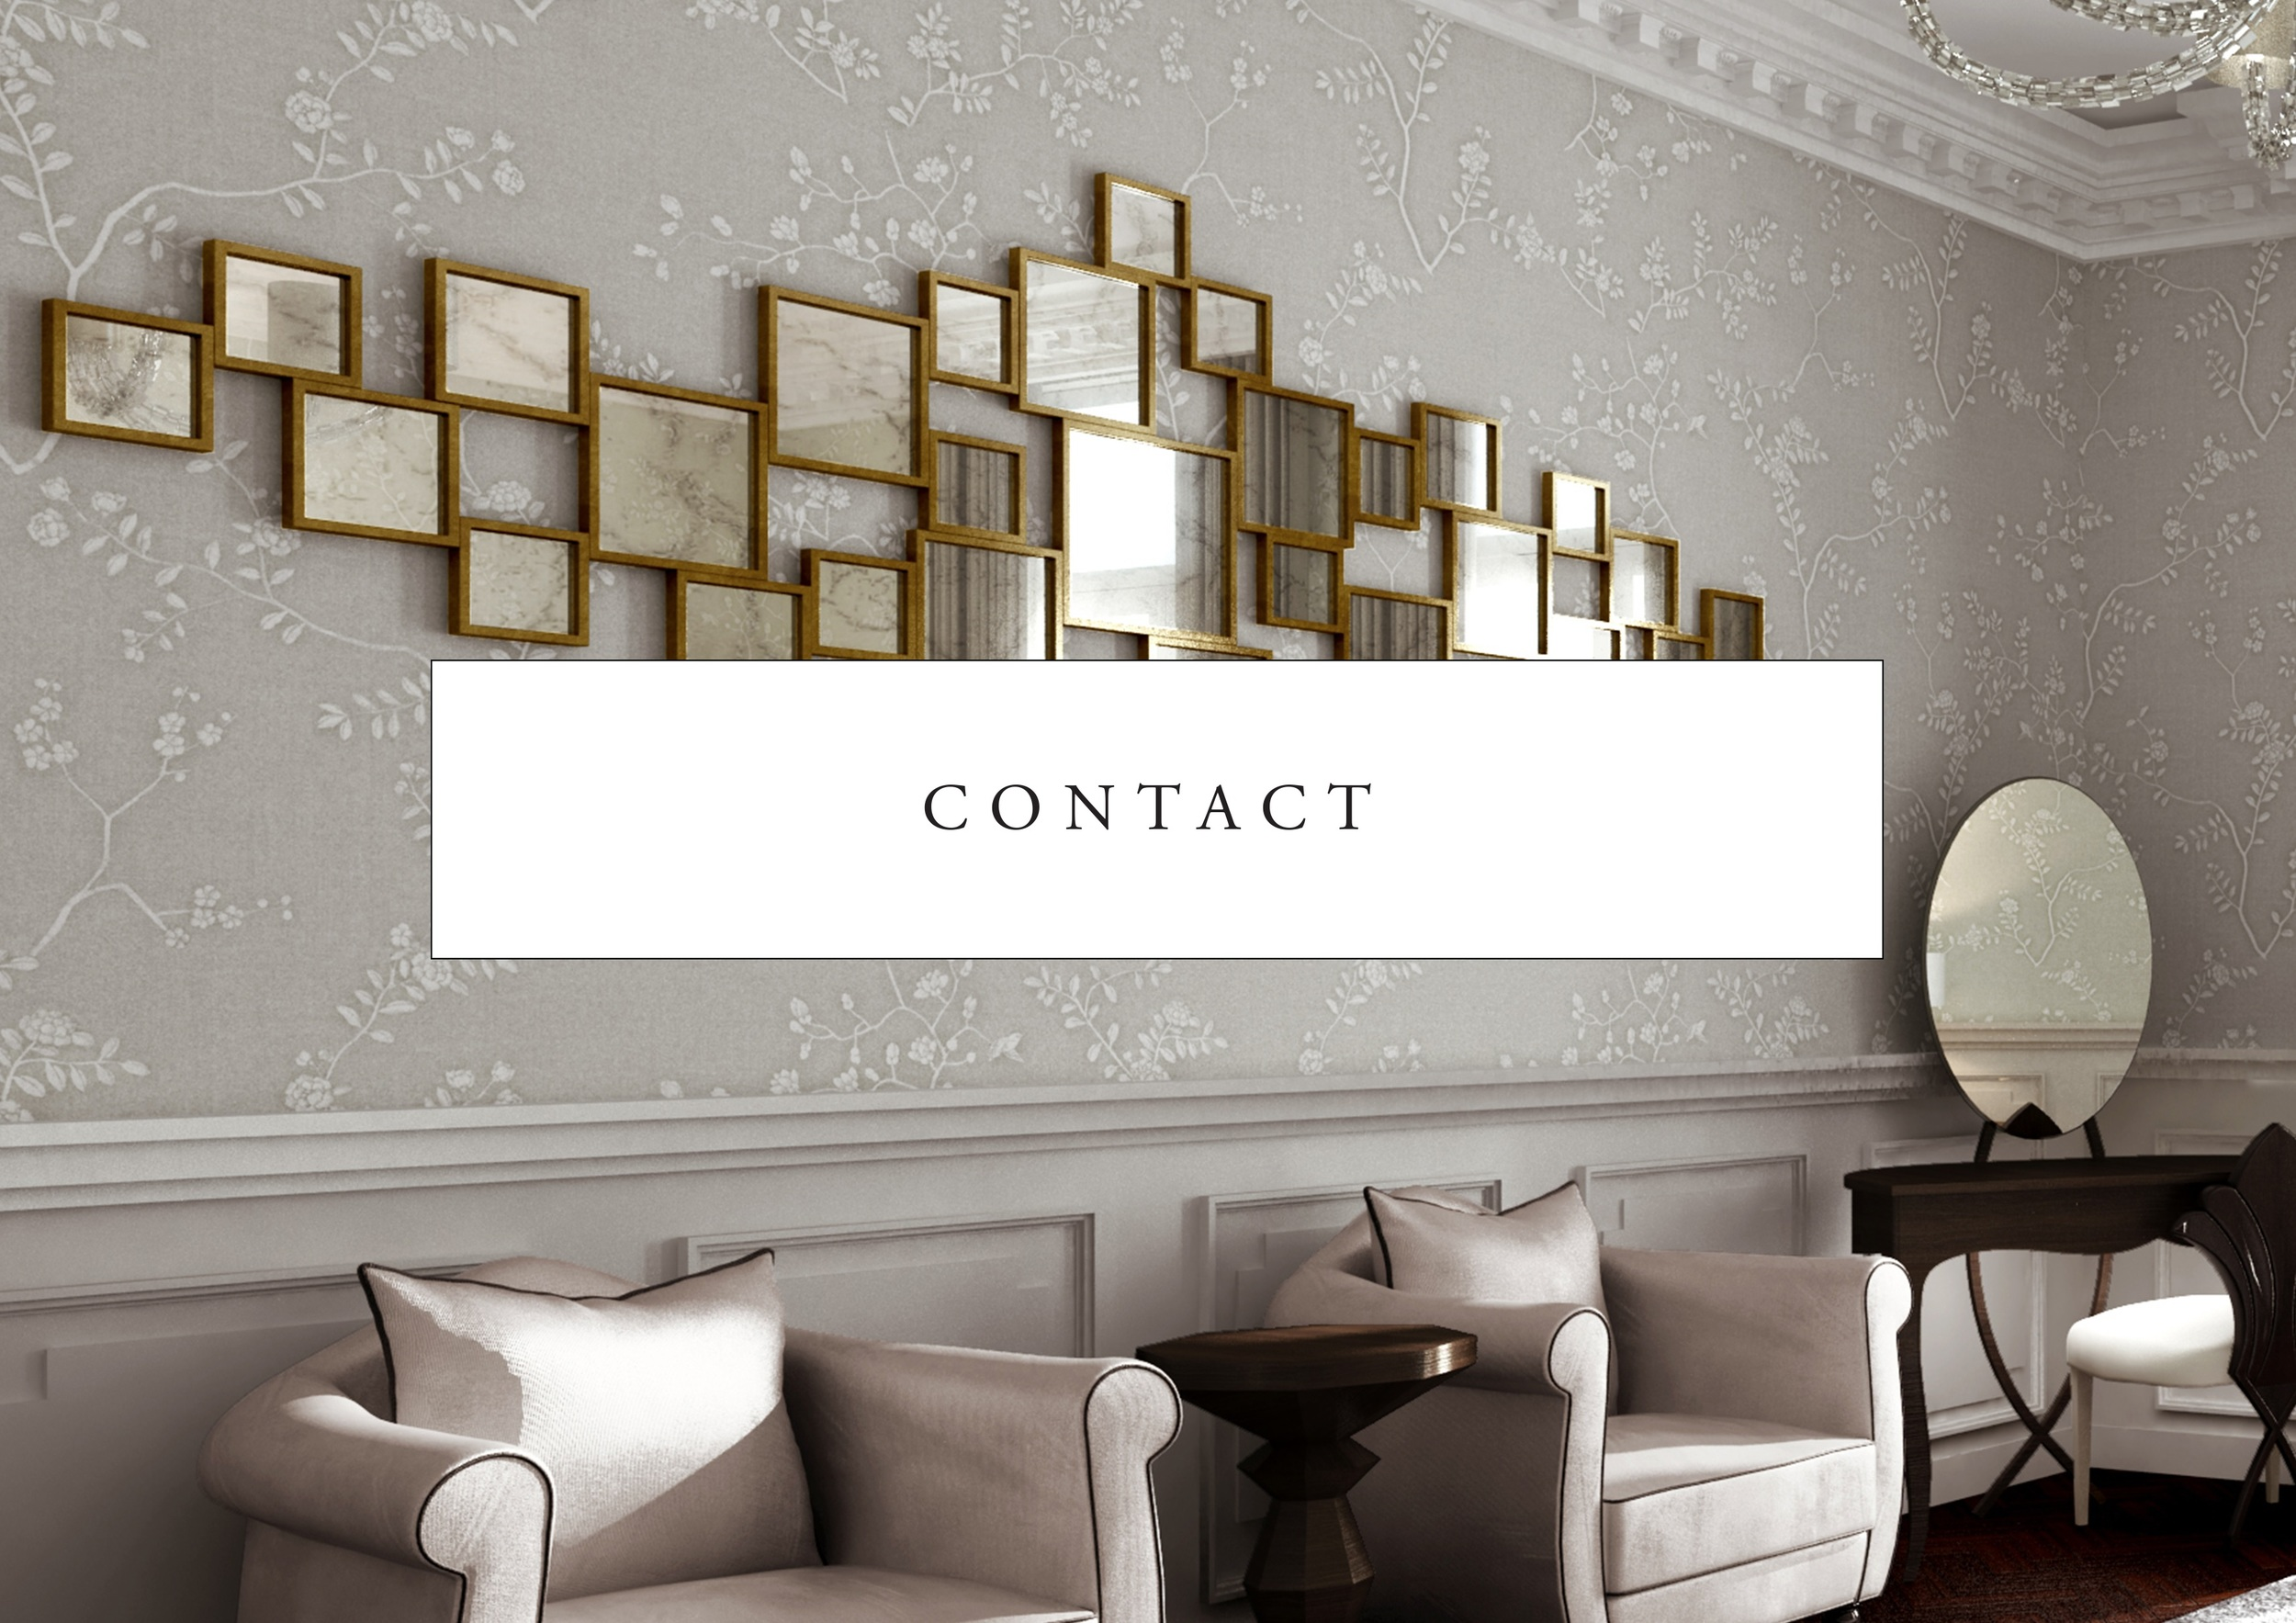 Contact | High-end London interior designer Jo Hamilton